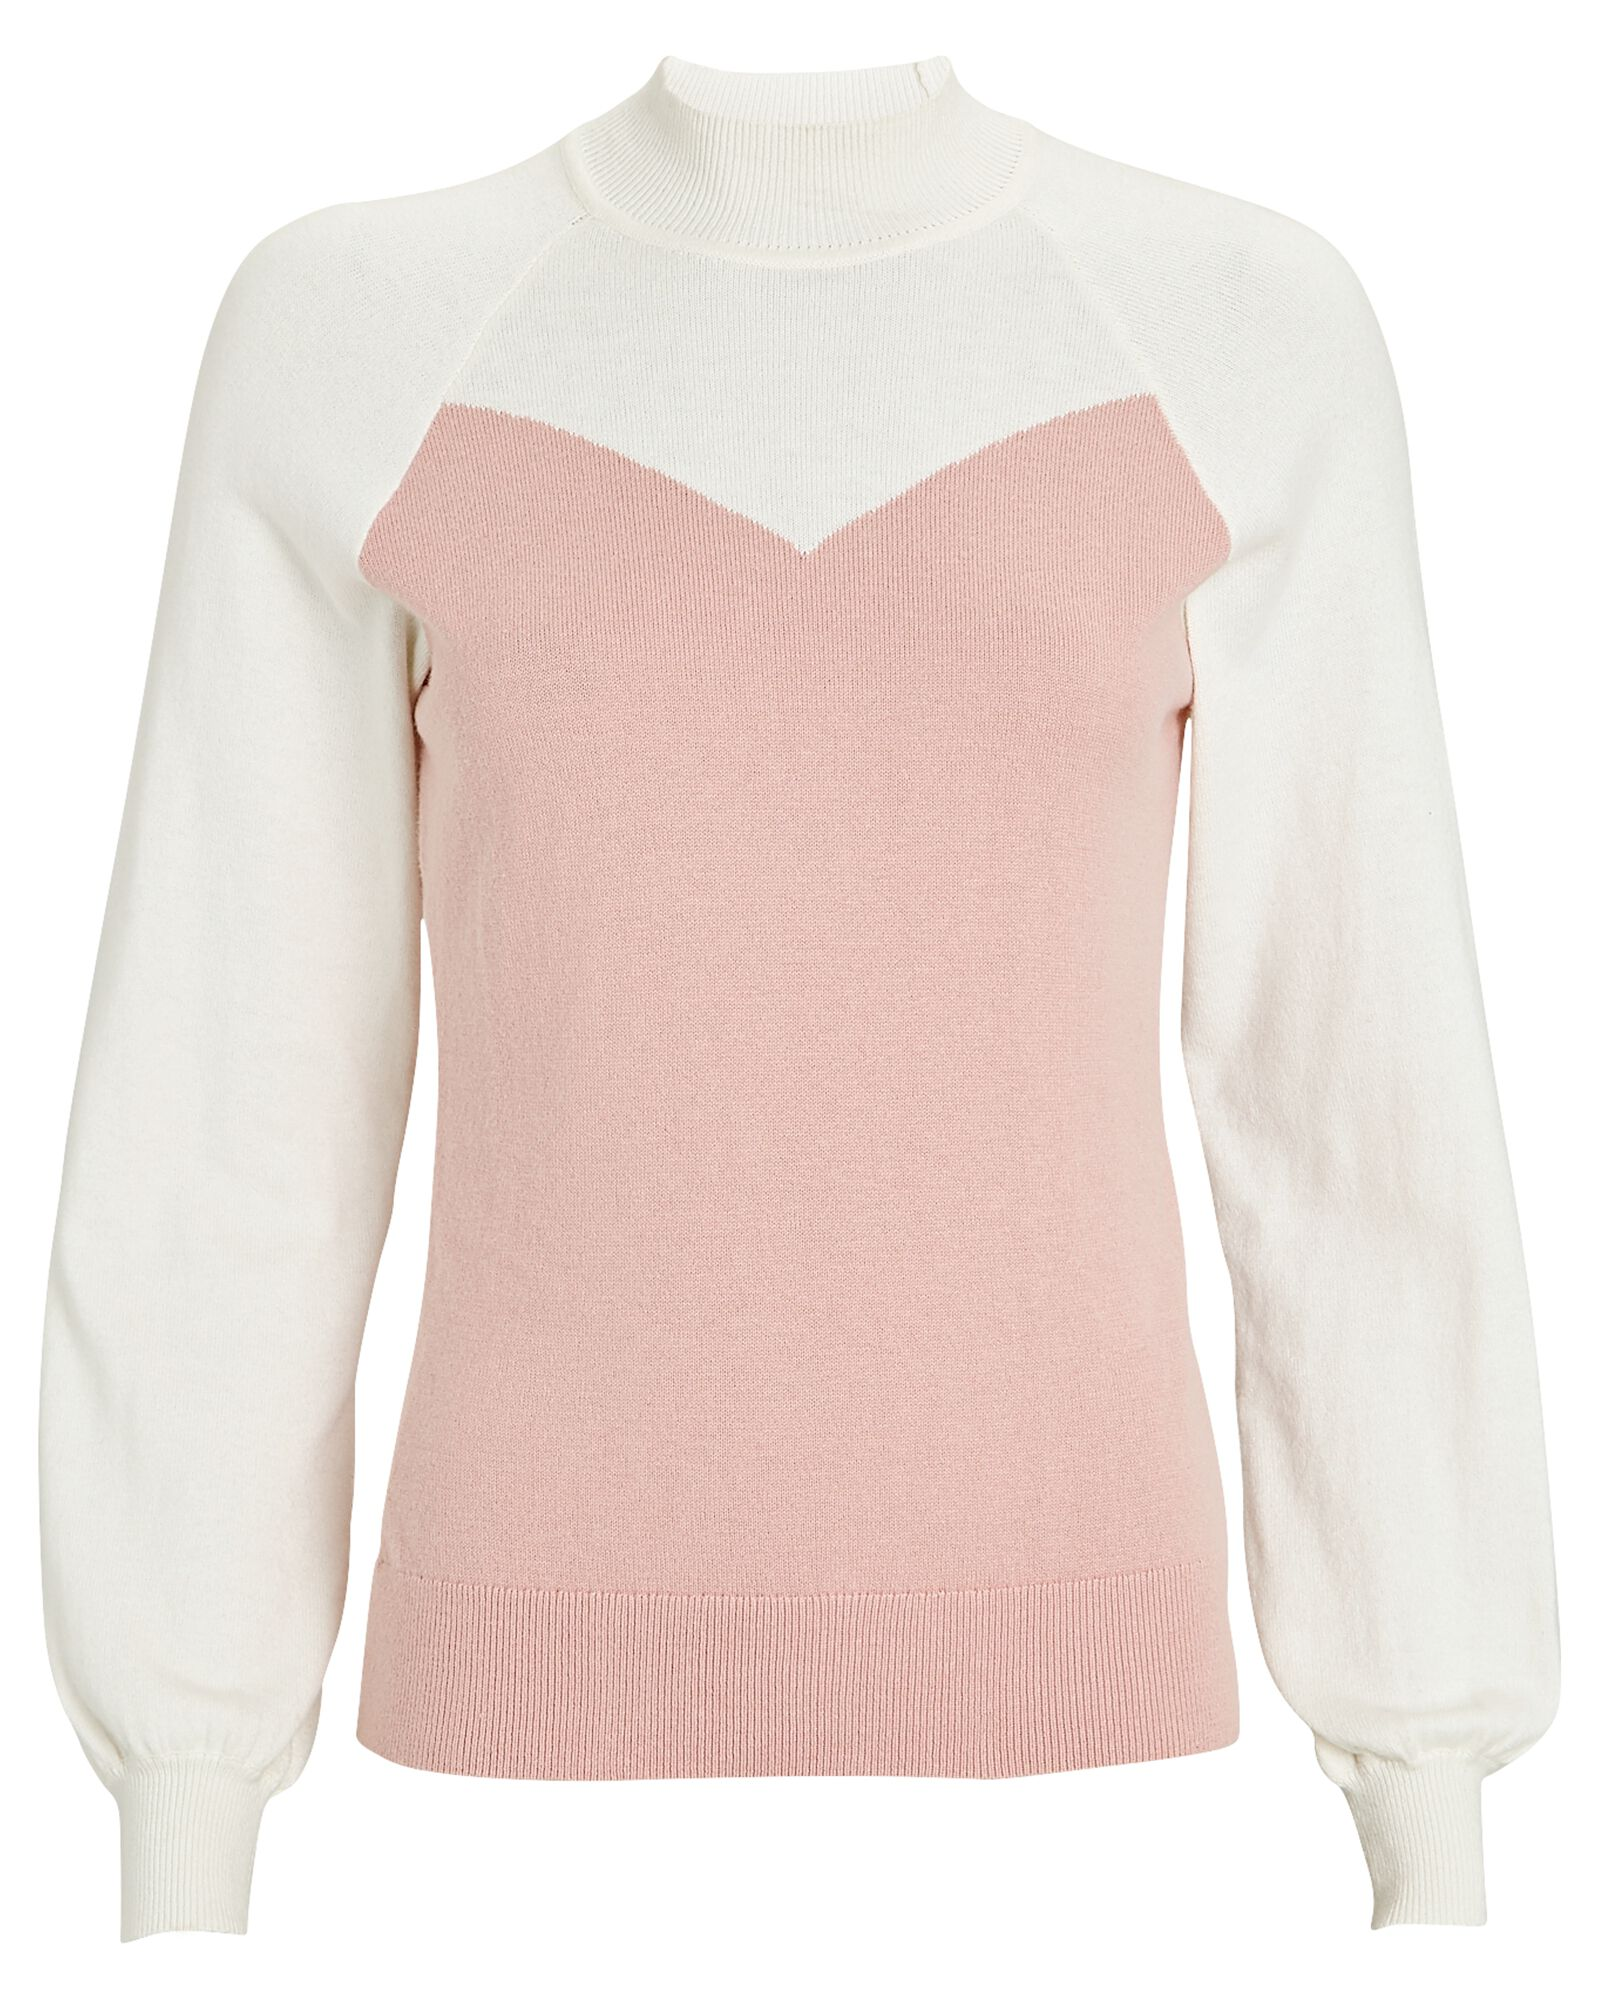 Intarsia Mock Neck Sweater, IVORY/BLUSH, hi-res